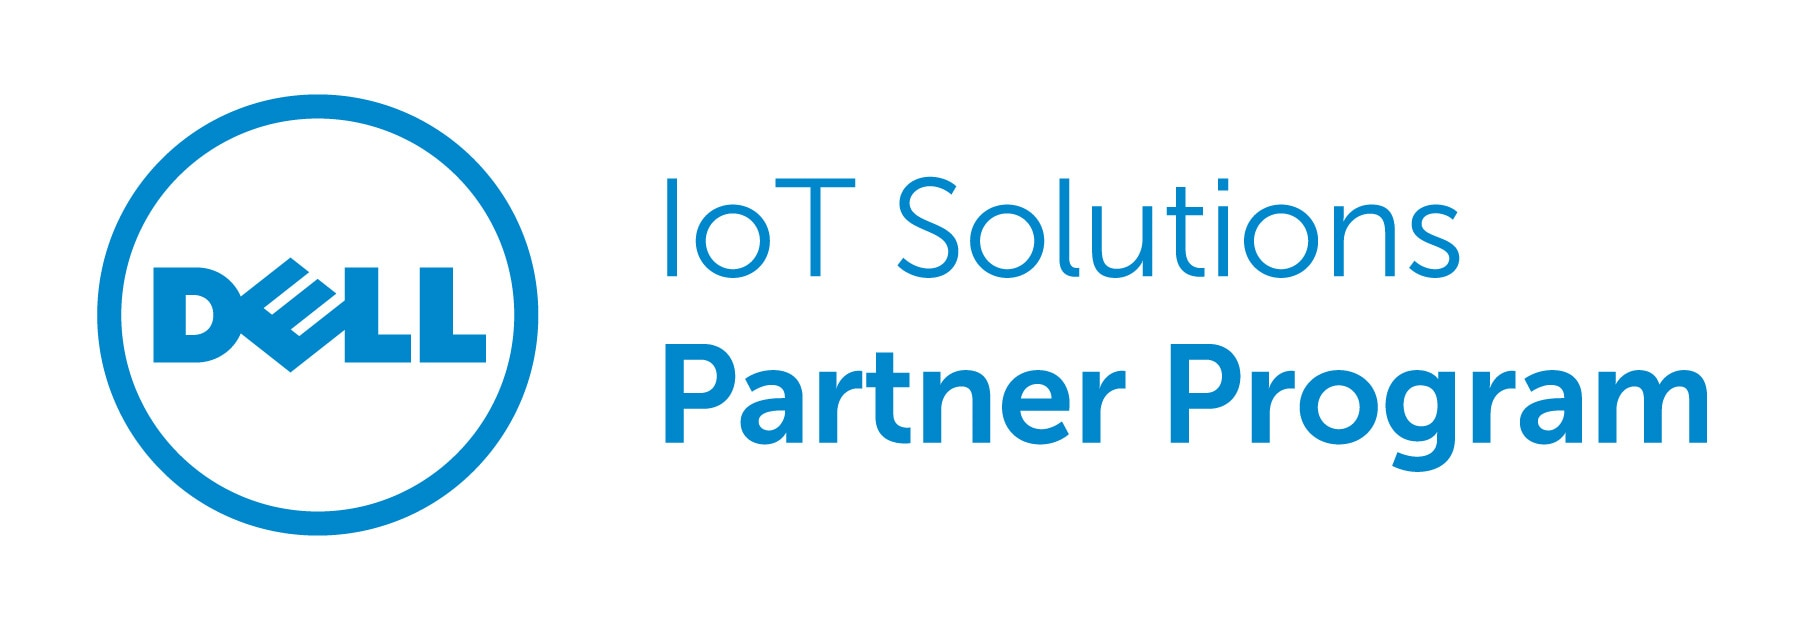 Dell IoT Solutions Partner Program Logo RGB